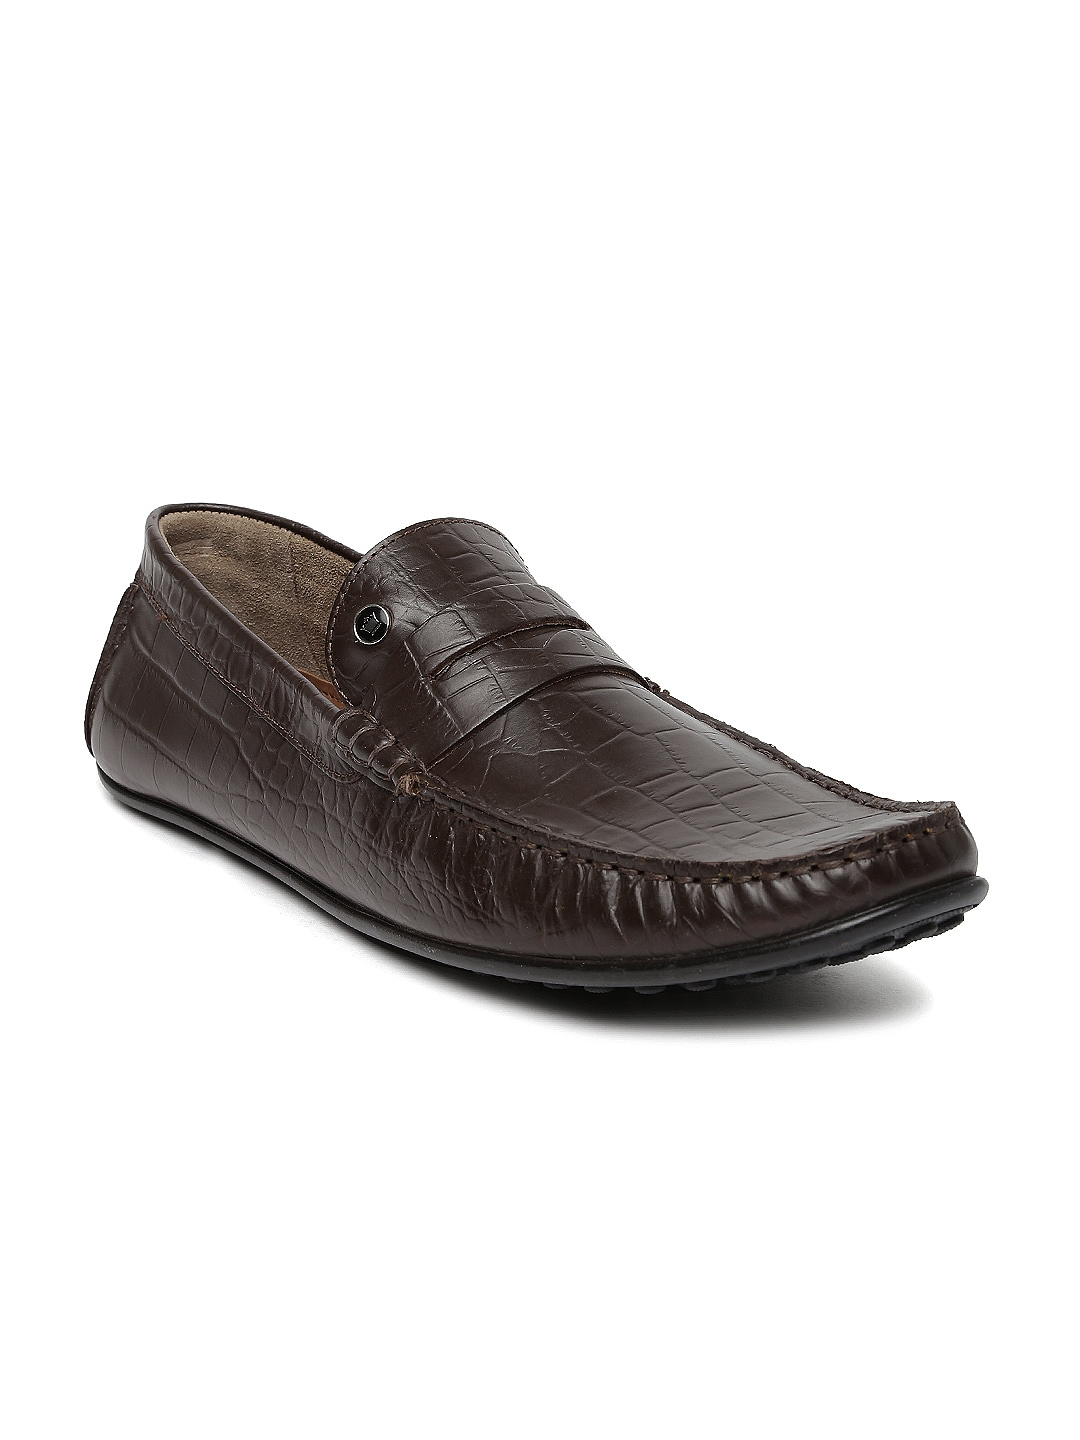 louis philippe brown leather semiformal shoes price